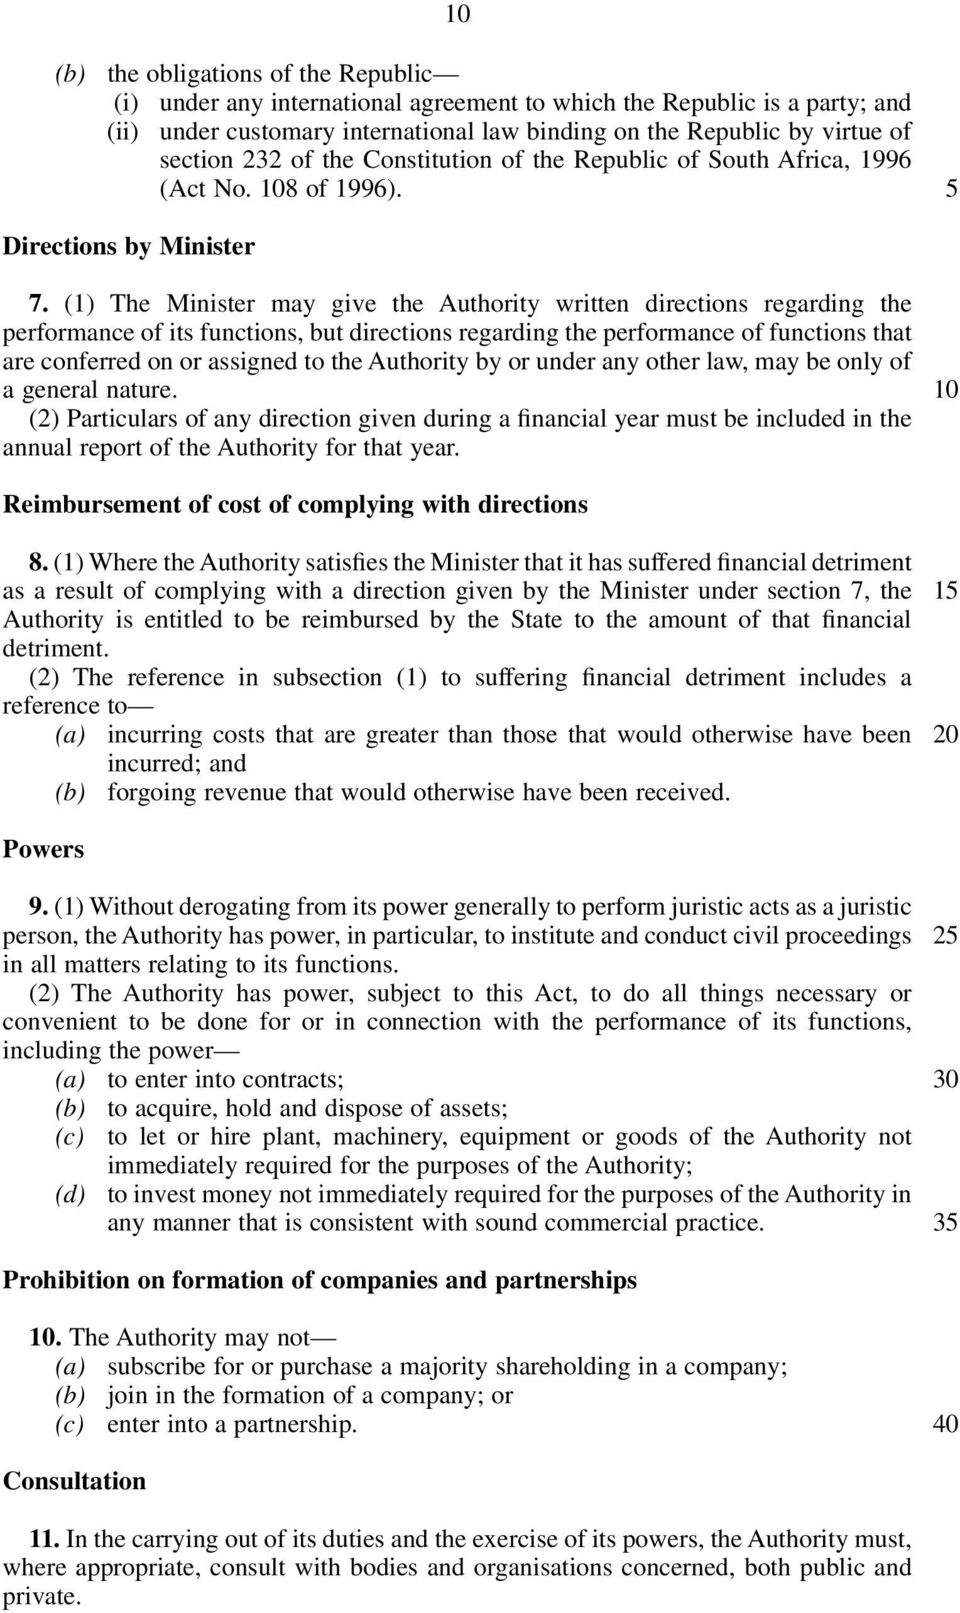 (1) The Minister may give the Authority written directions regarding the performance of its functions, but directions regarding the performance of functions that are conferred on or assigned to the